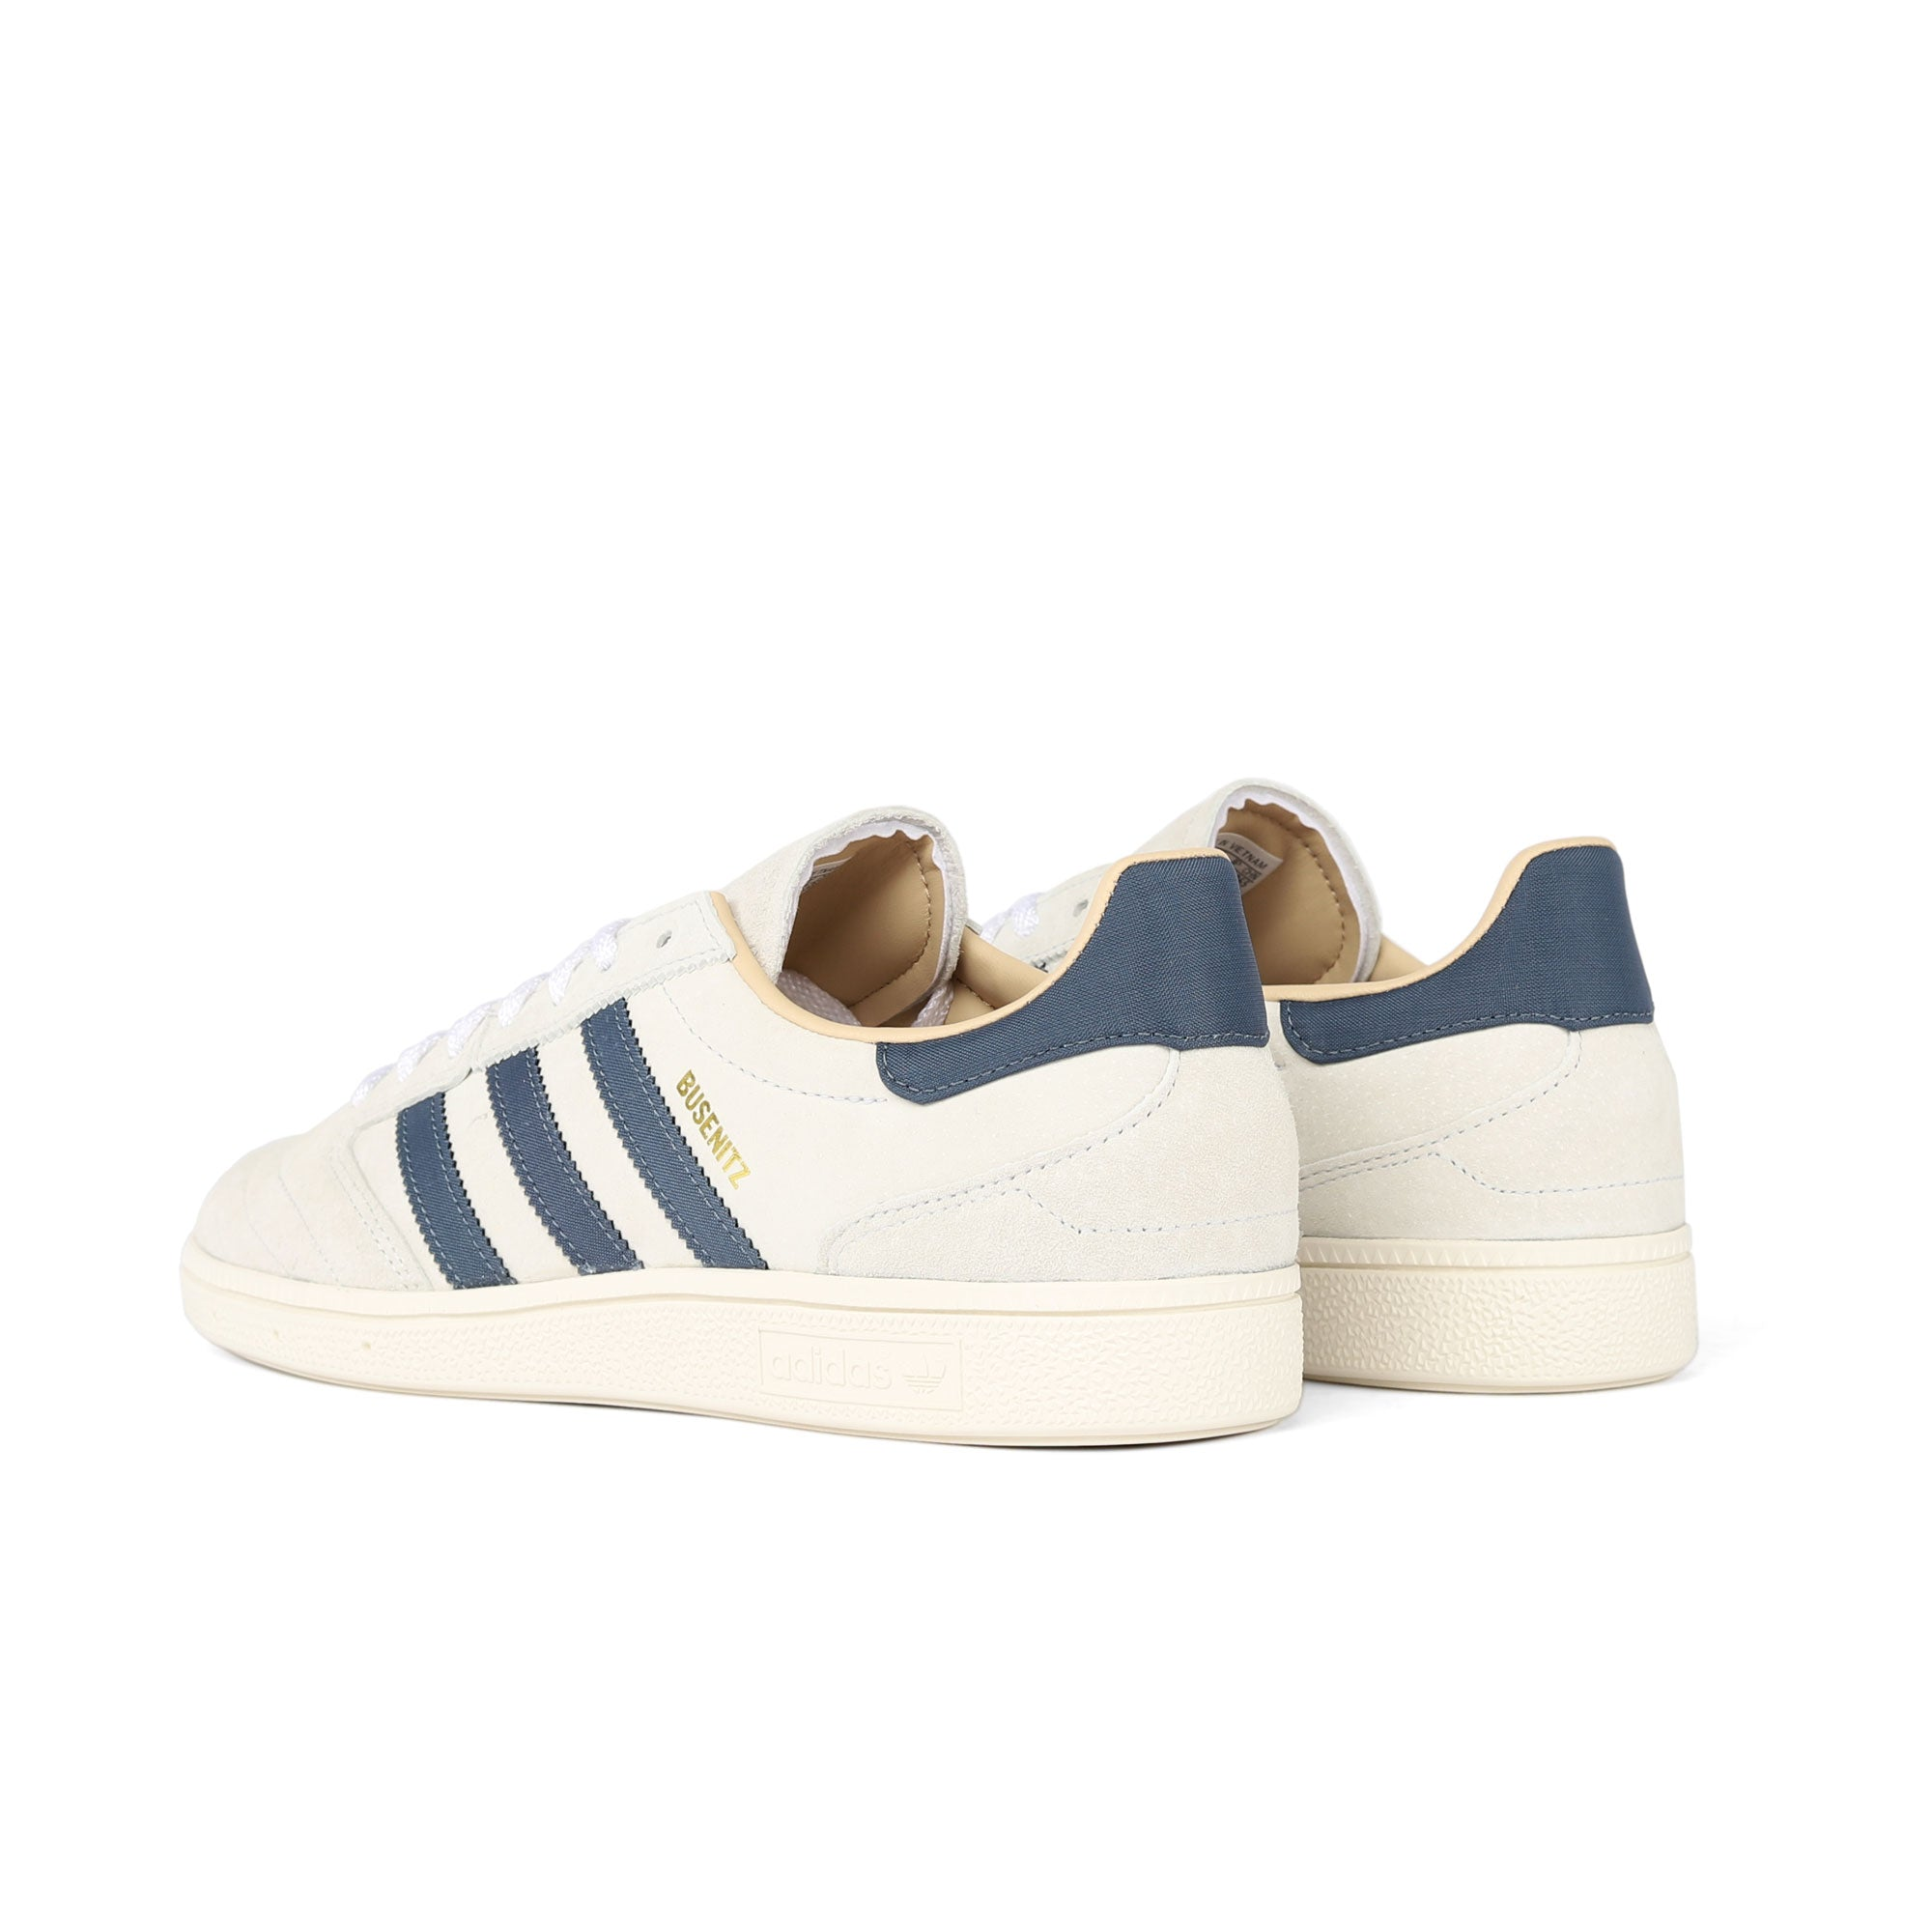 Adidas Busenitz Vintage Product Photo #3